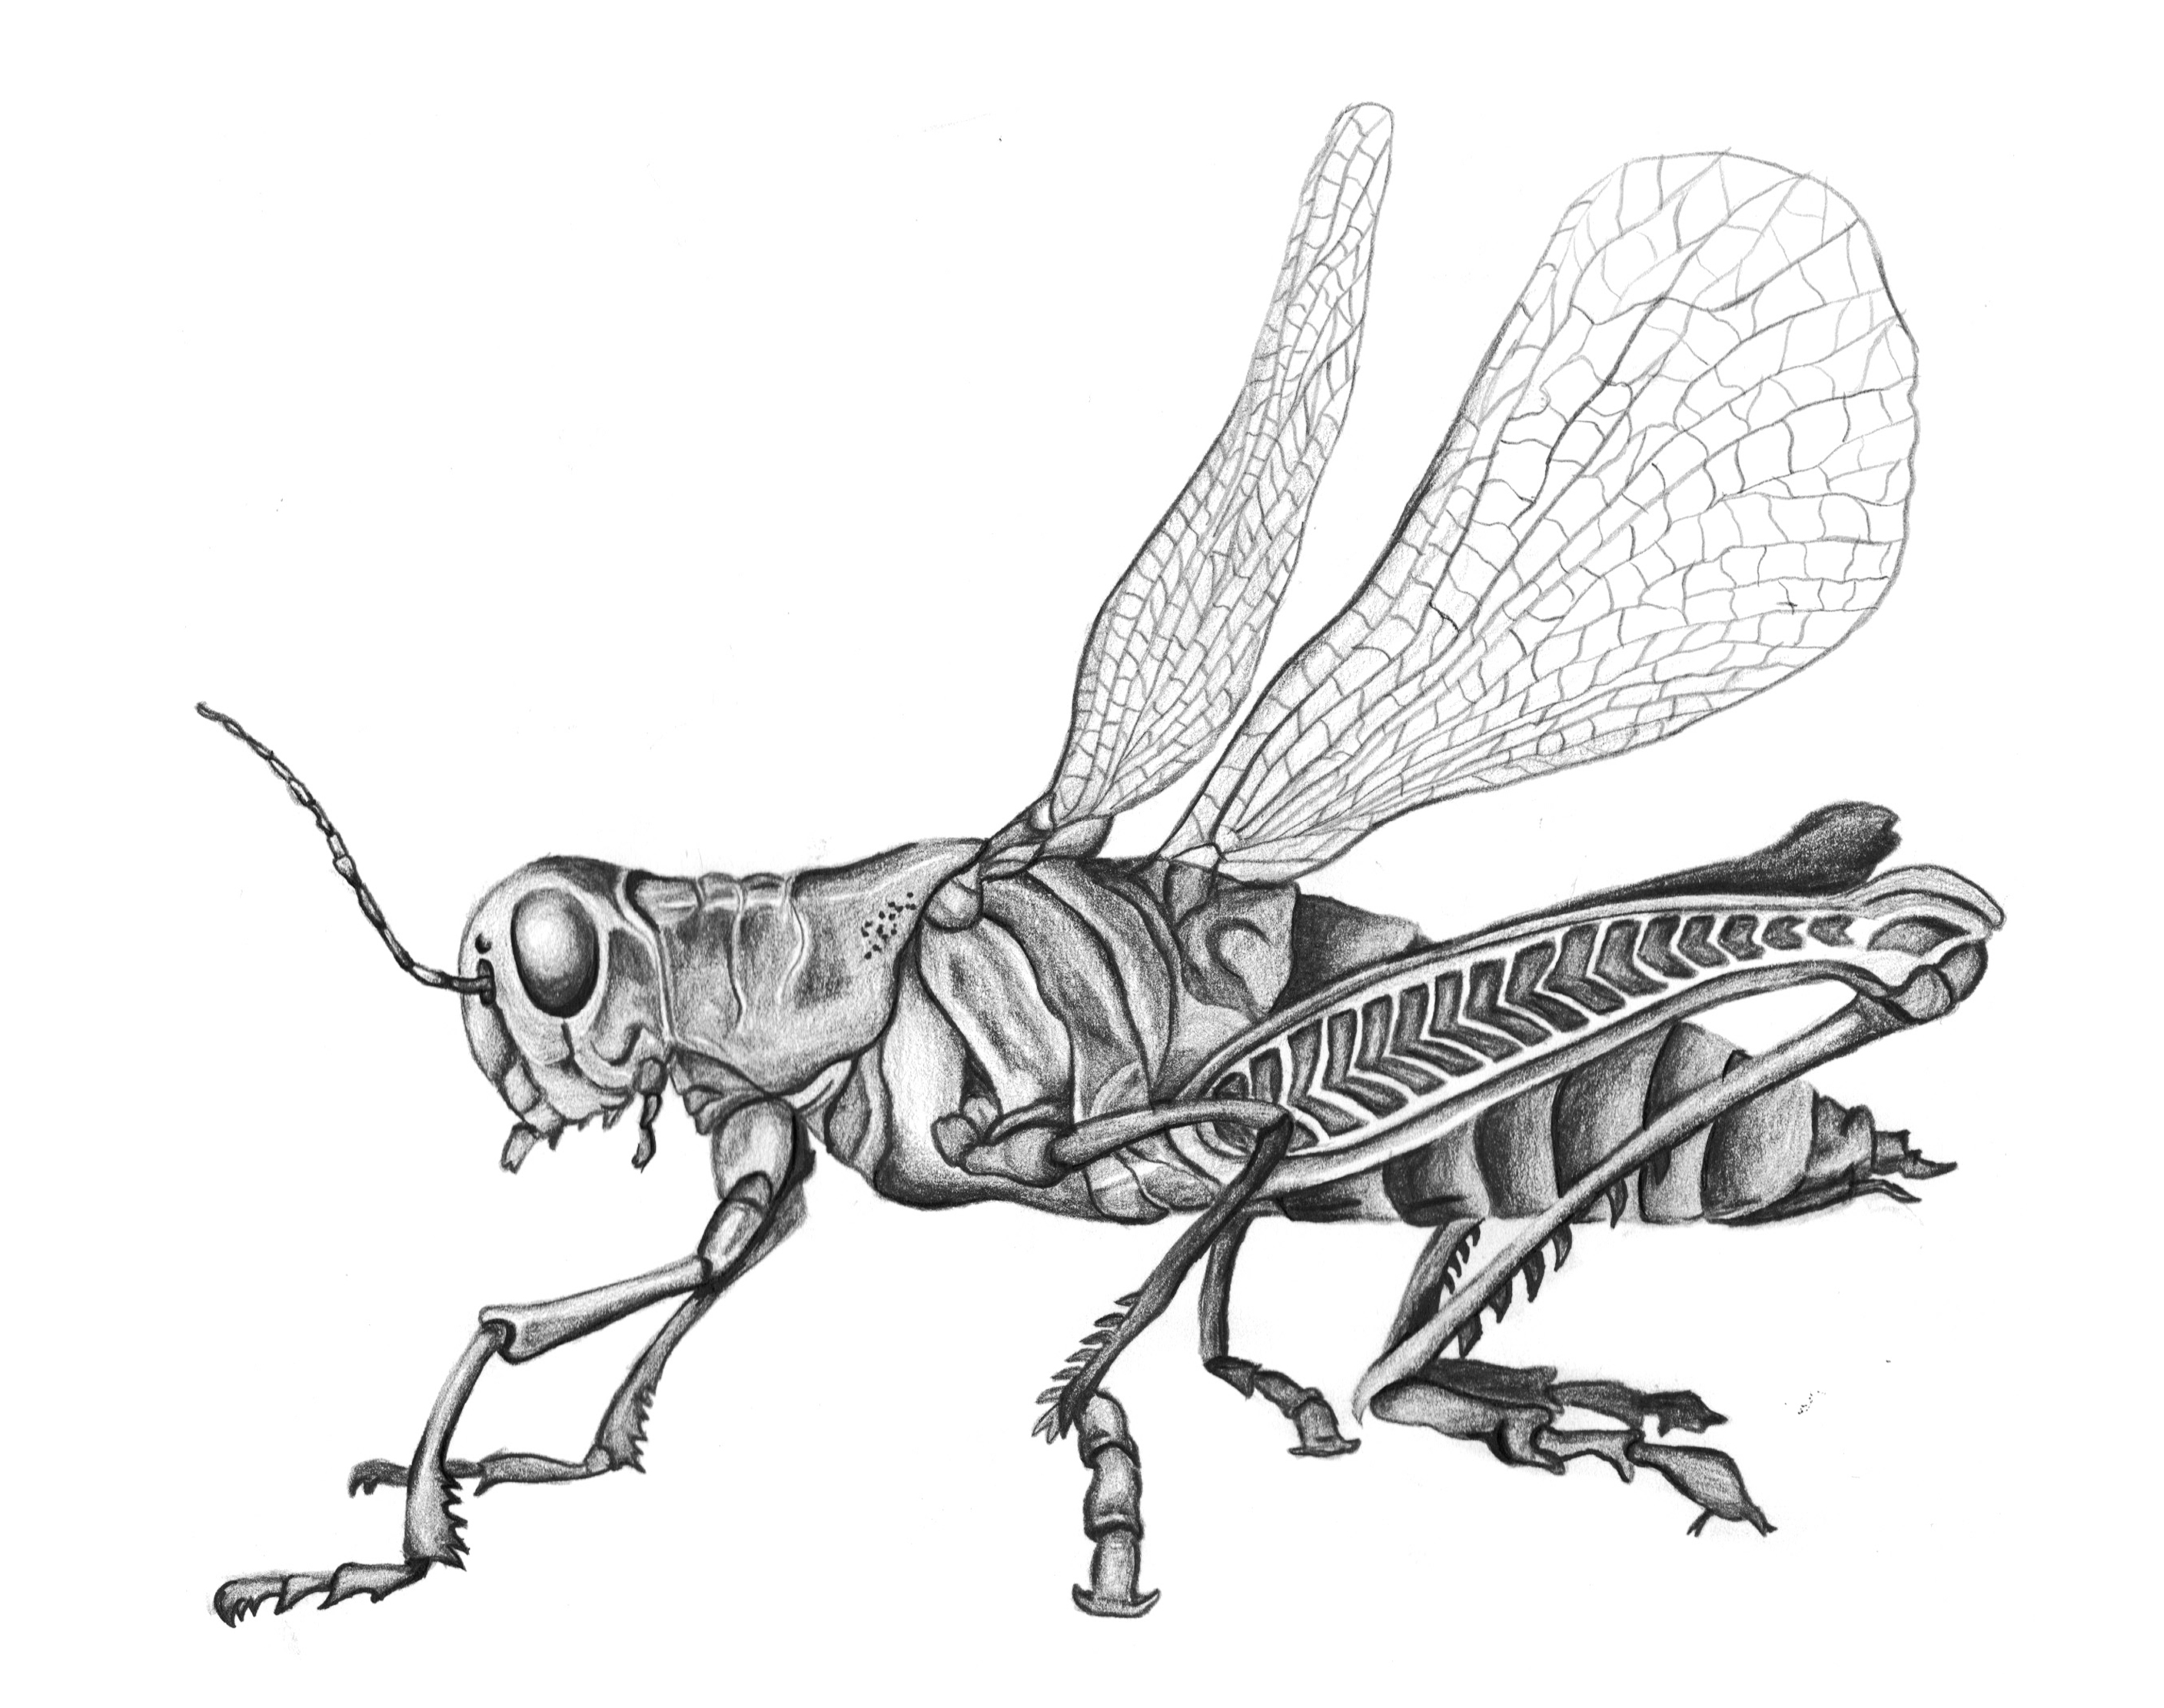 Drawn insect #13